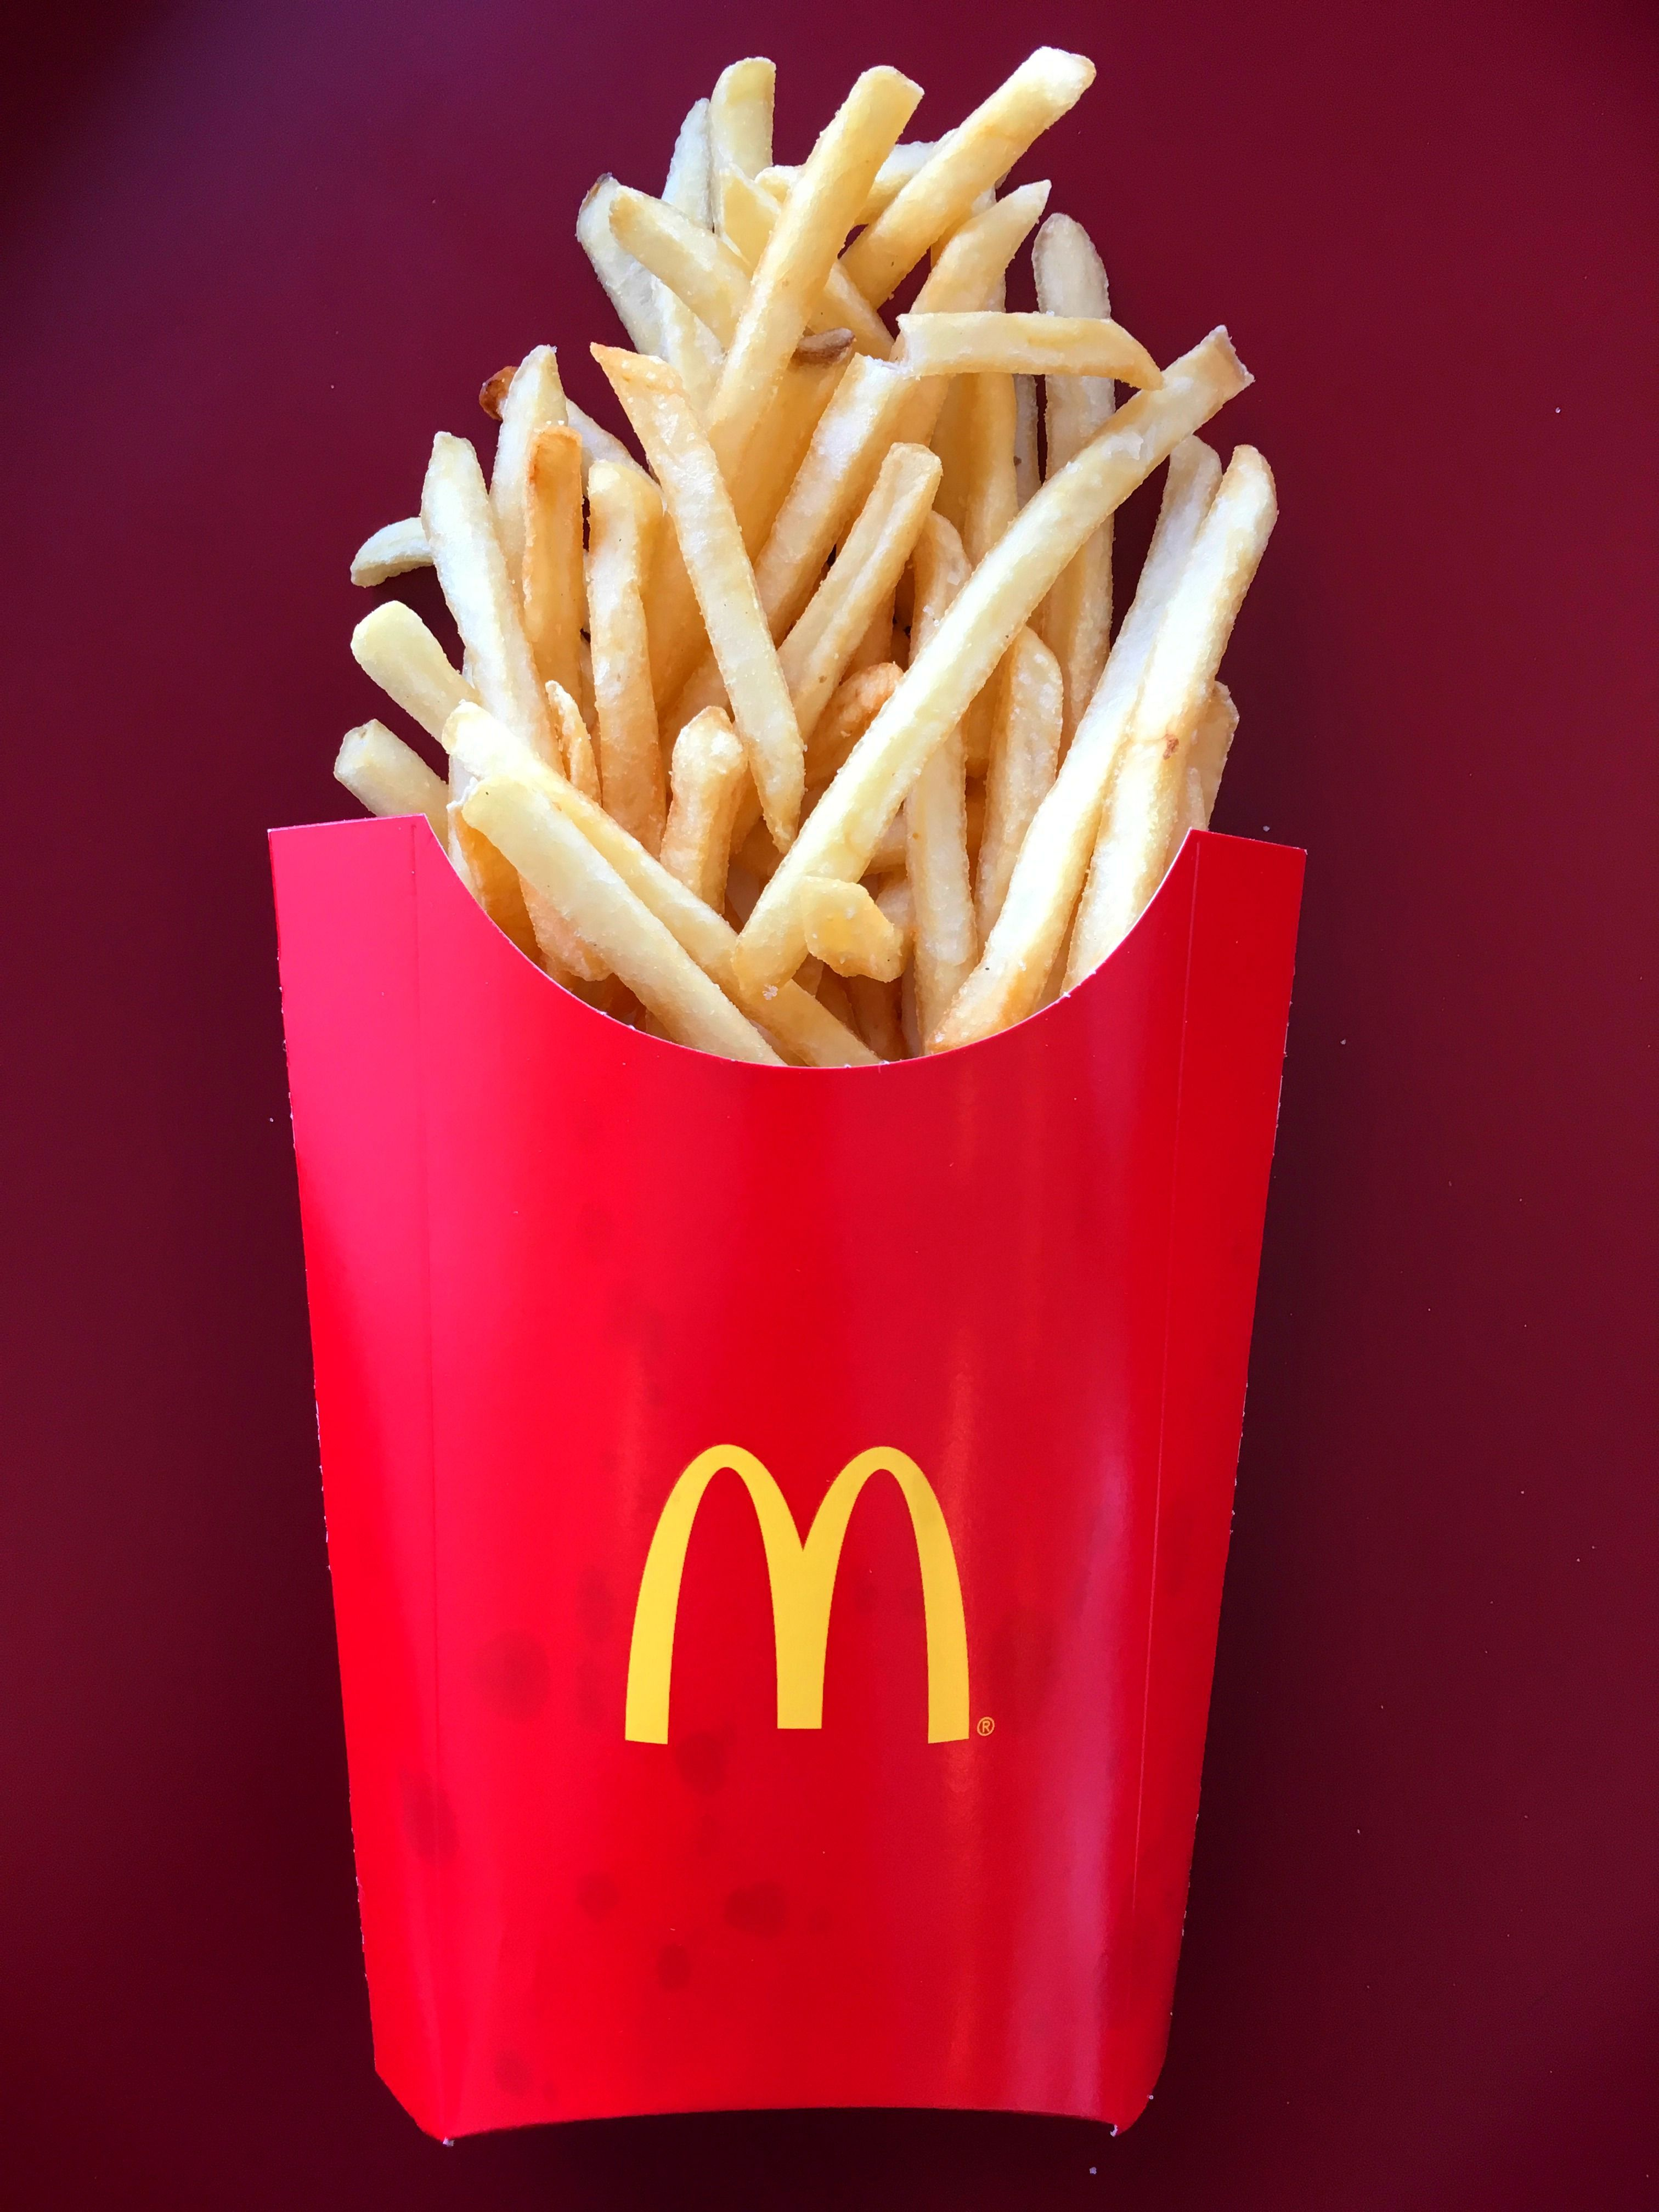 How well do you know your fast food french fries food